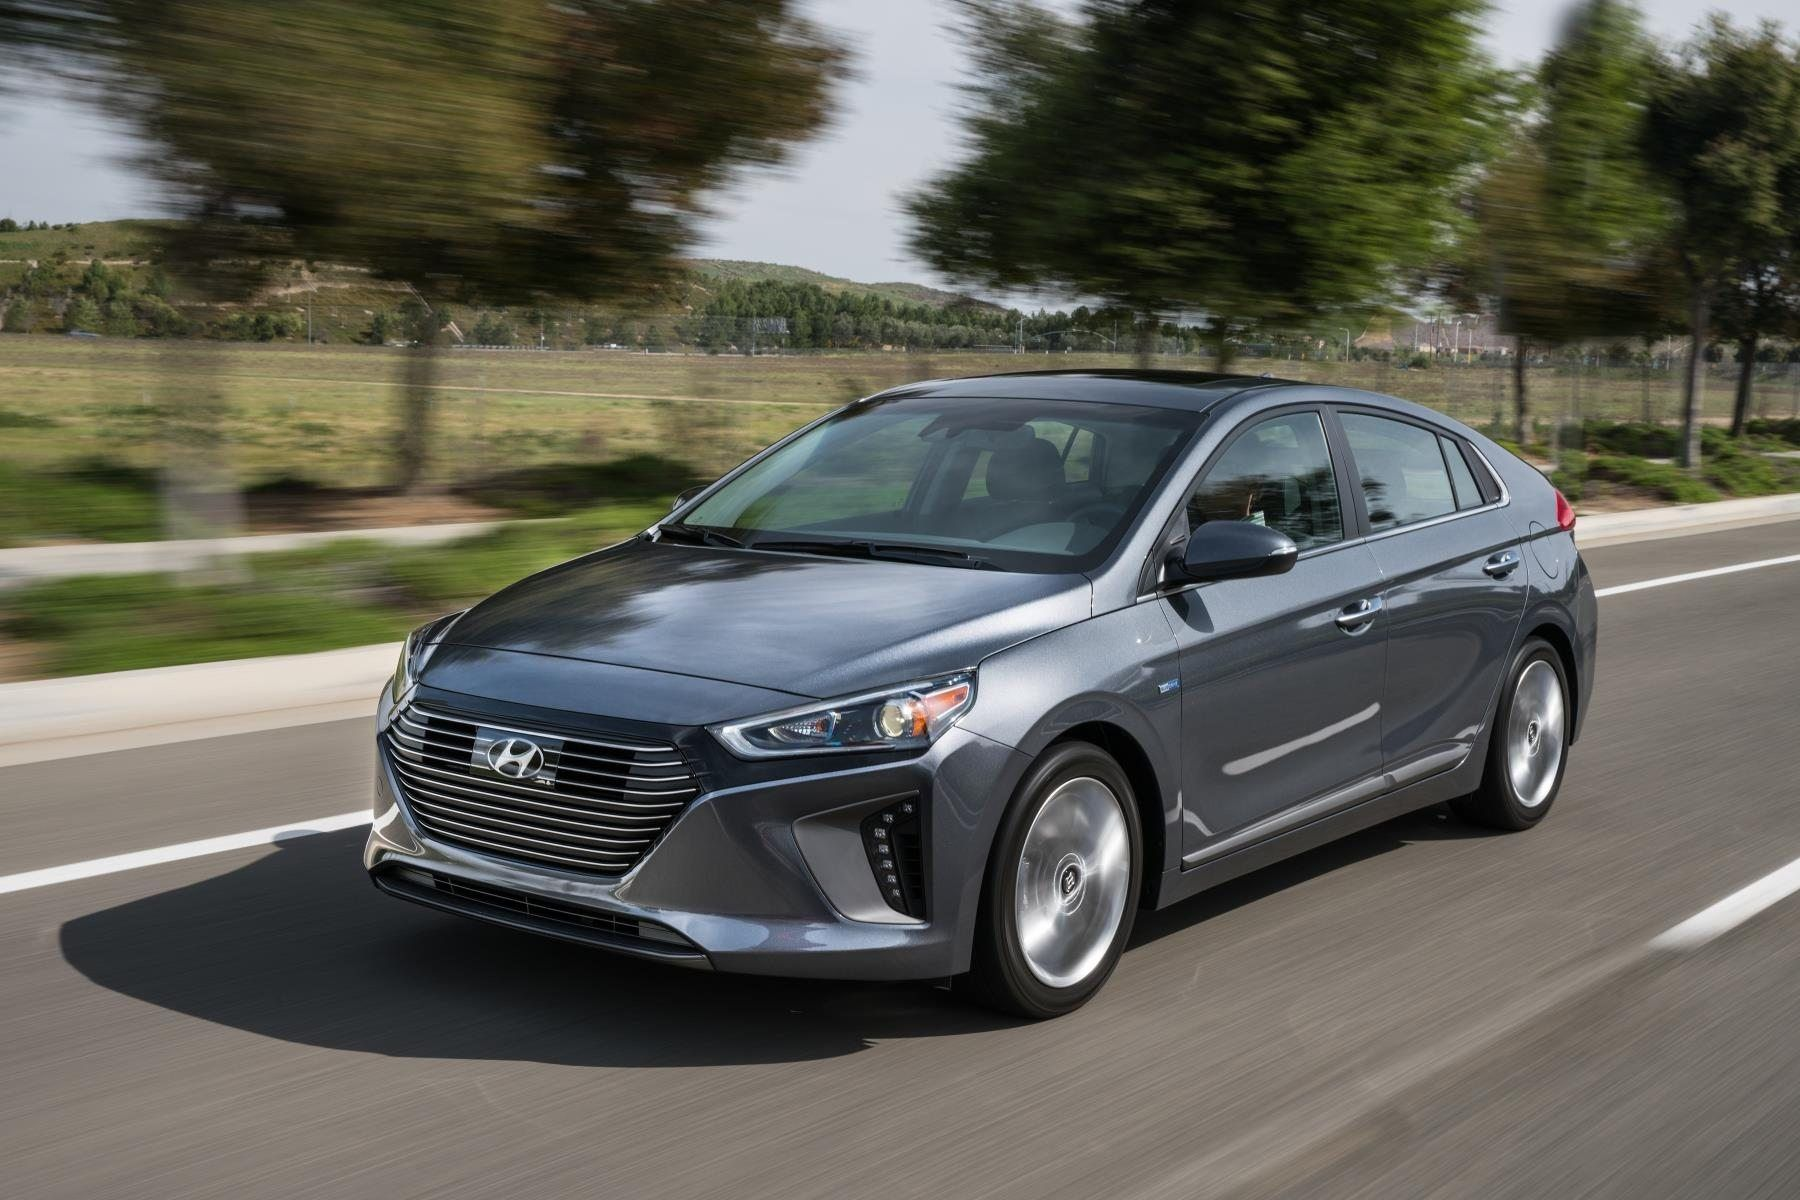 2017 Hyundai Ioniq Hybrid And Electric Models Soon To Be Available Exterior Hybrid Car Hyundai Cars Fuel Efficient Cars